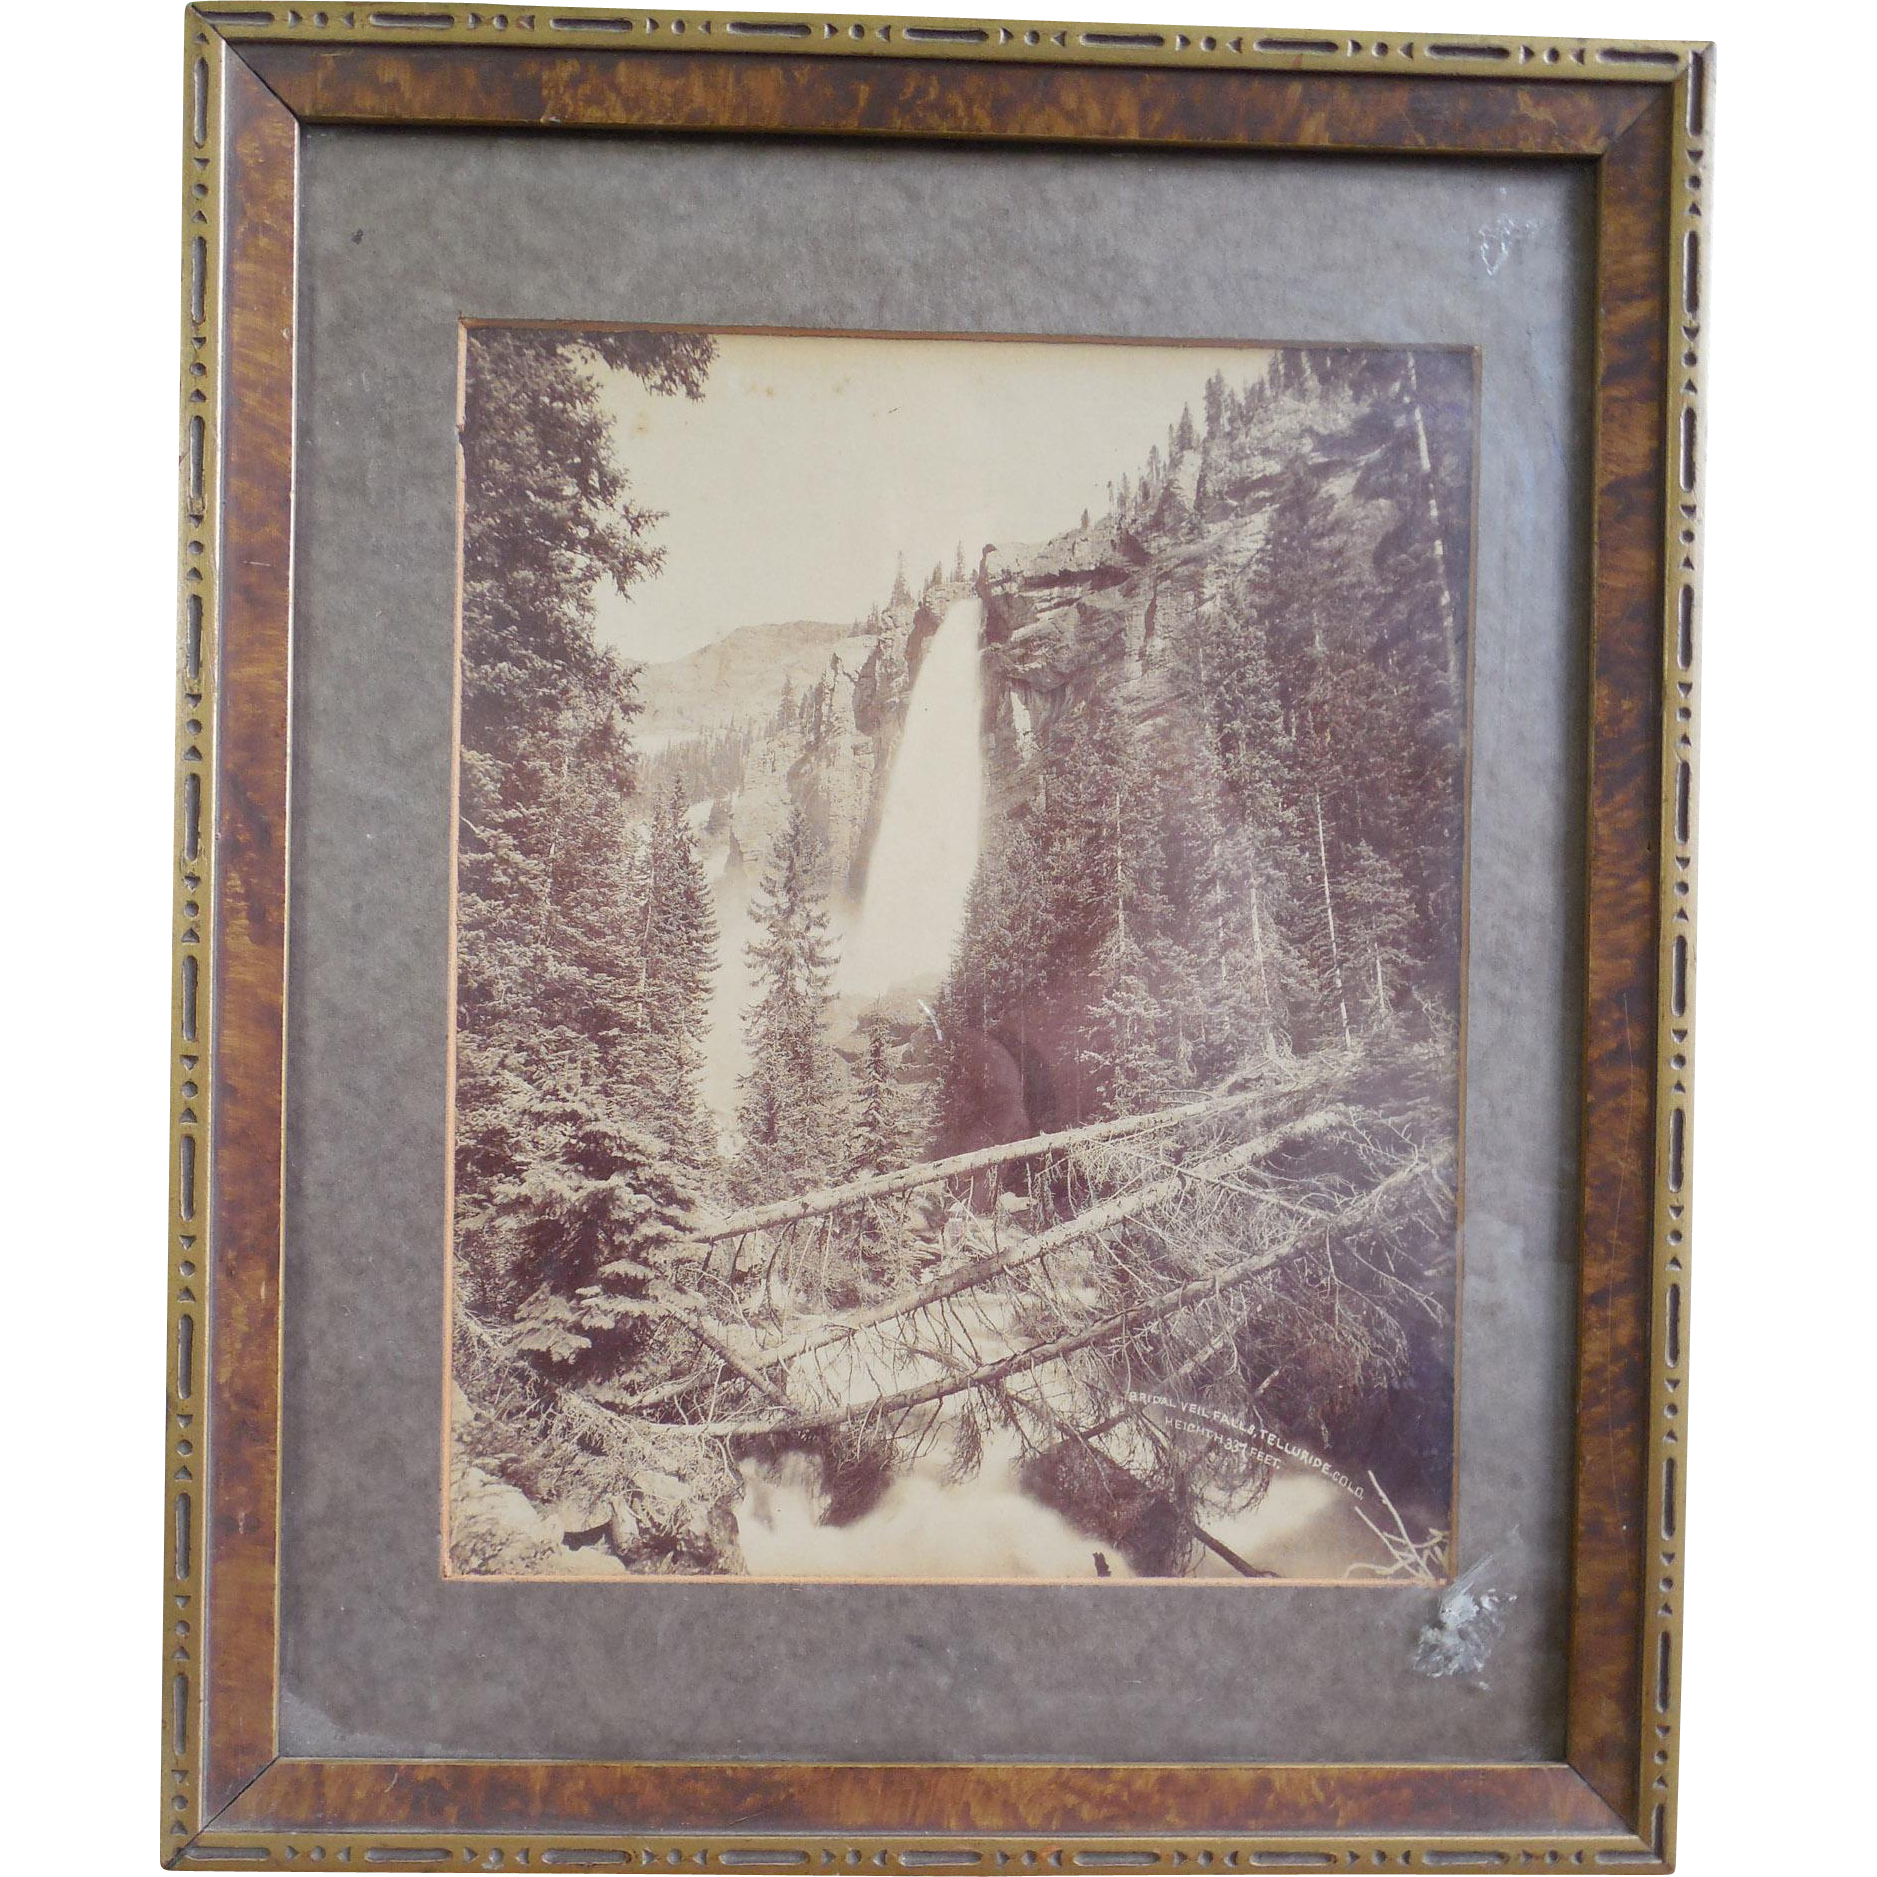 Rare Antique 1895 Photograph by William Henry Jackson of Bridal Veil Falls at Telluride Colorado